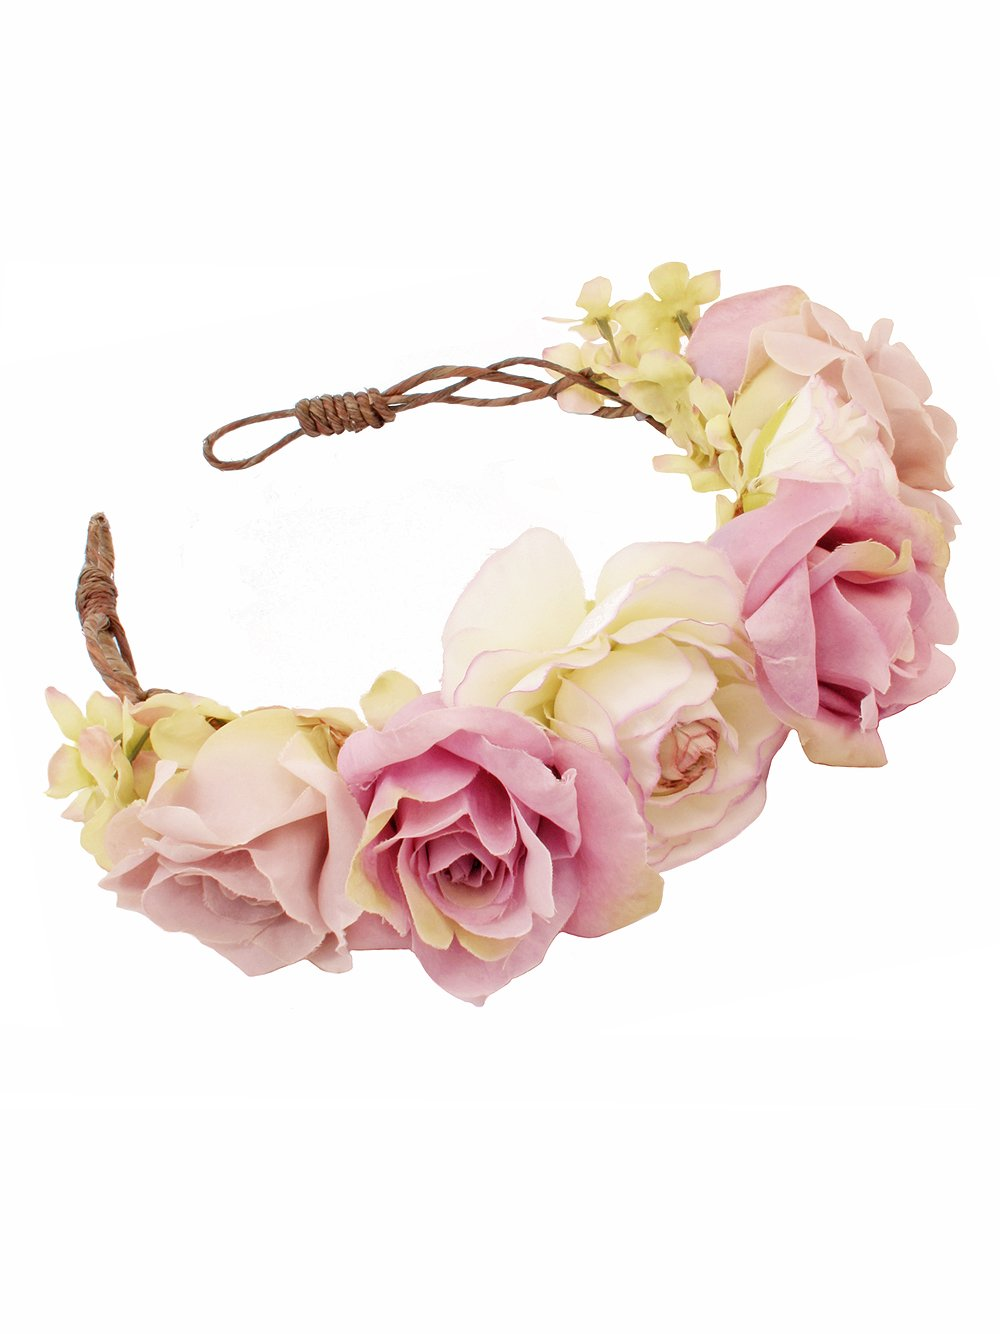 The Quintessentially Bride Blog Flower Crowns This Seasons Bride